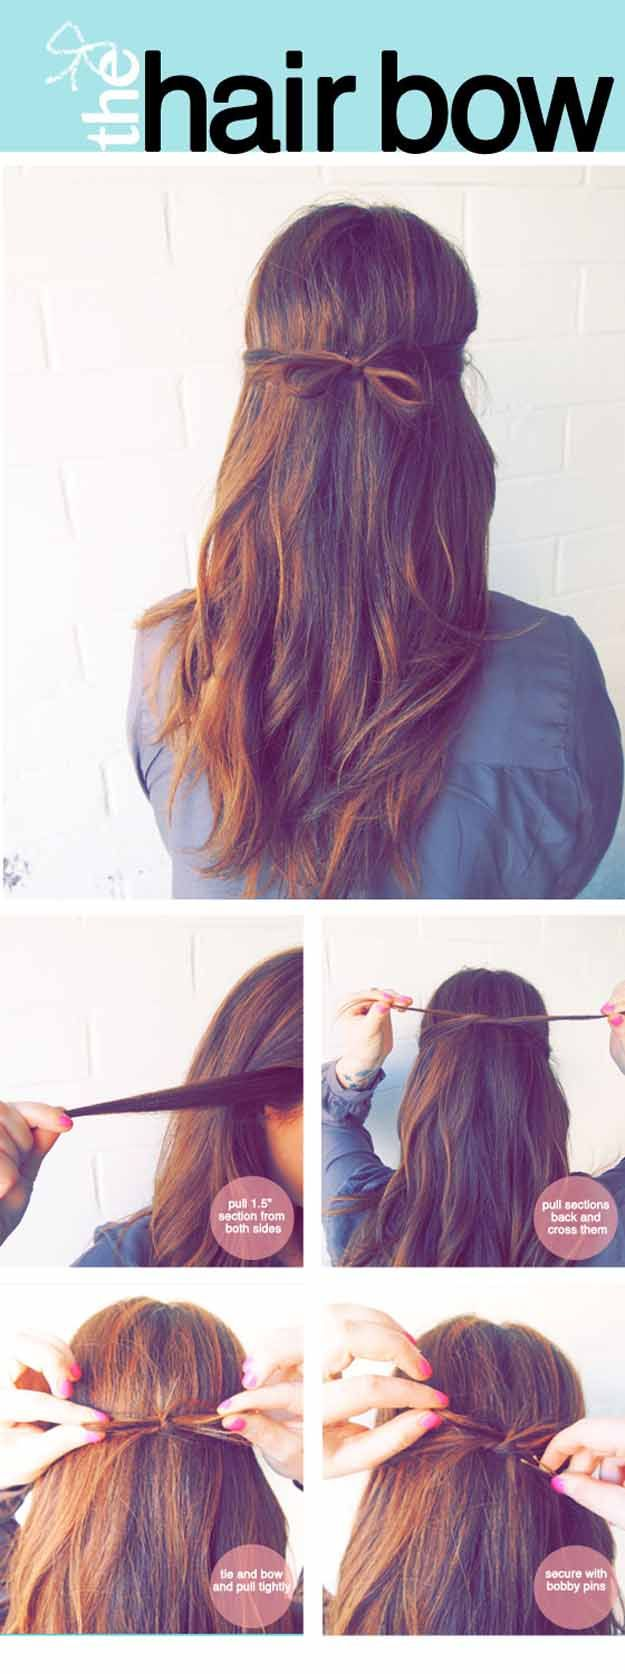 Quick and Easy Hairstyles for Straight Hair - The Tidy Hair Bow